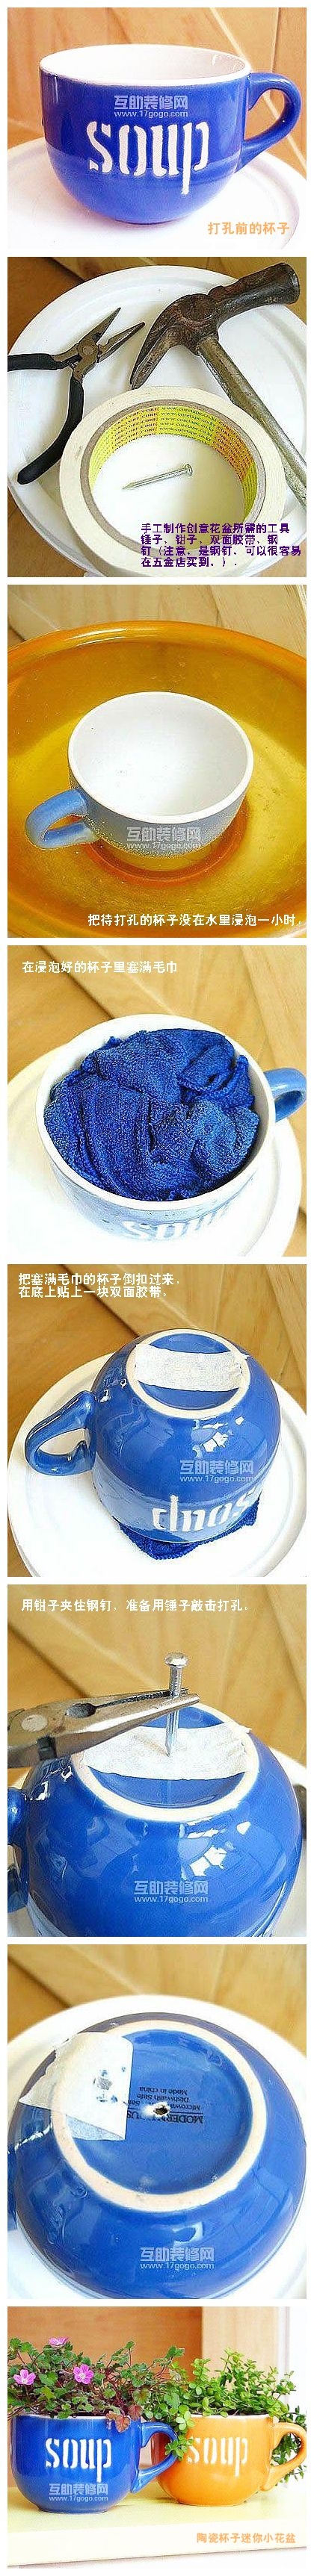 how to punch a hole without any fancy tools - soak in water for an hour, and put wet towel inside then turn upside down